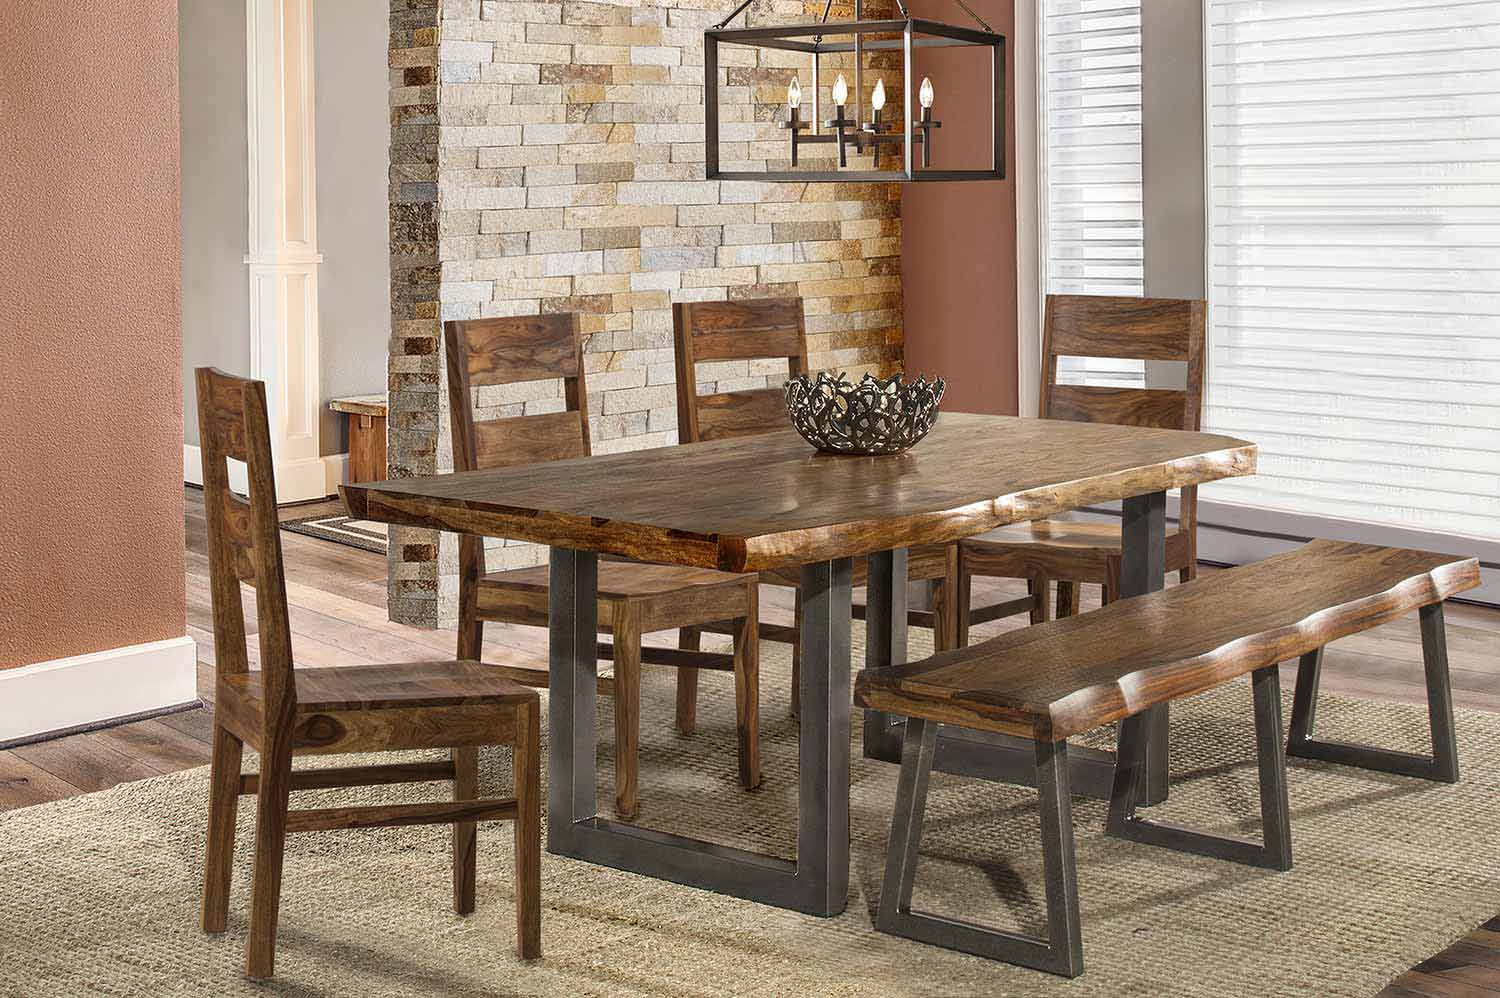 Hillsdale Emerson 6-Piece Rectangle Dining Set with Bench - Natural Sheesham